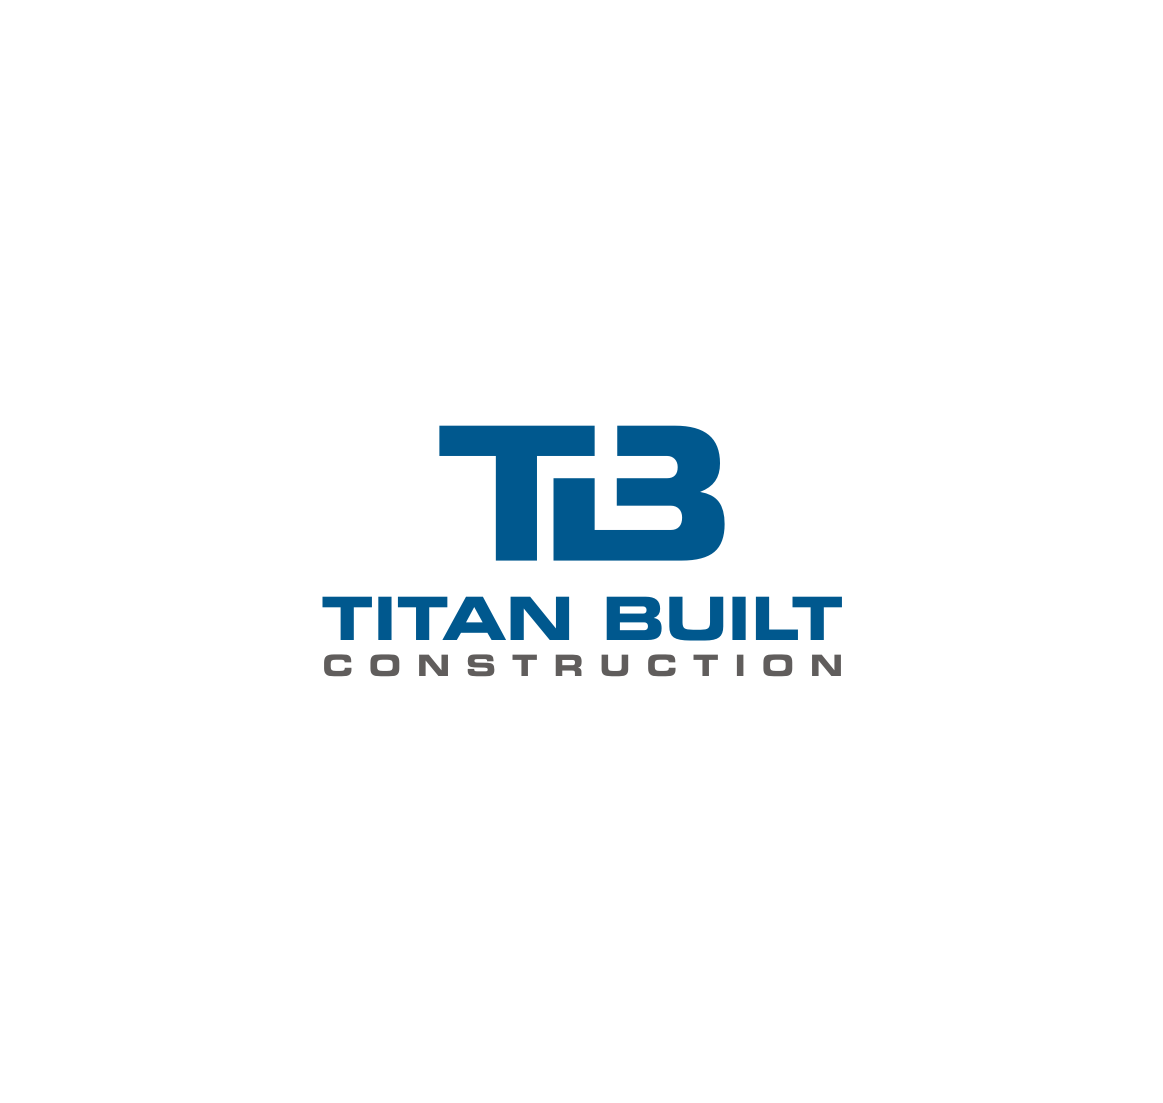 Masculine Serious Construction Company Logo Design For Titan Built